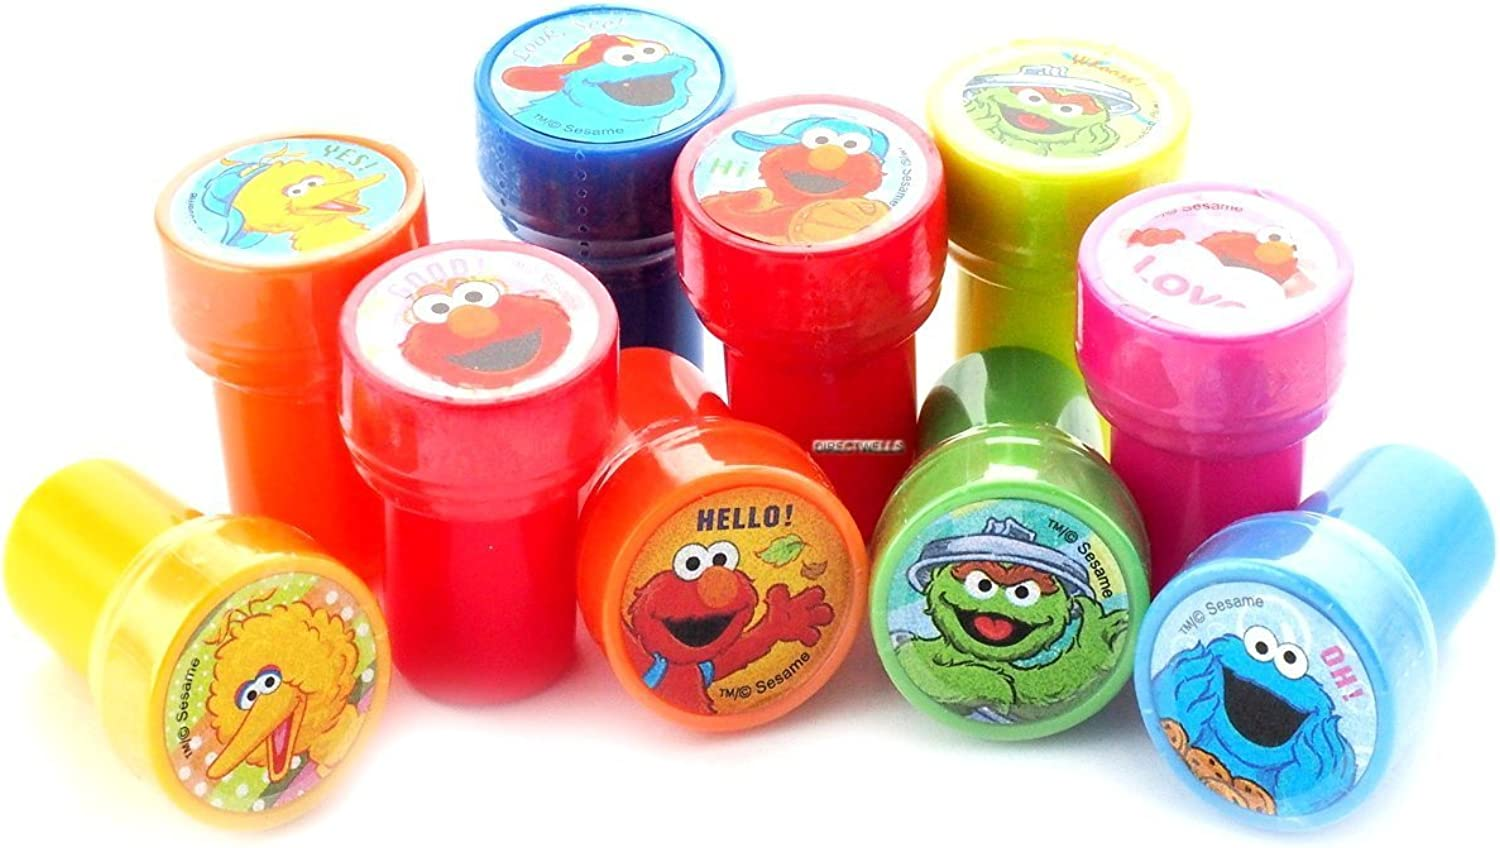 Elmo And Friends Stampers Party Favors (30 Stampers)